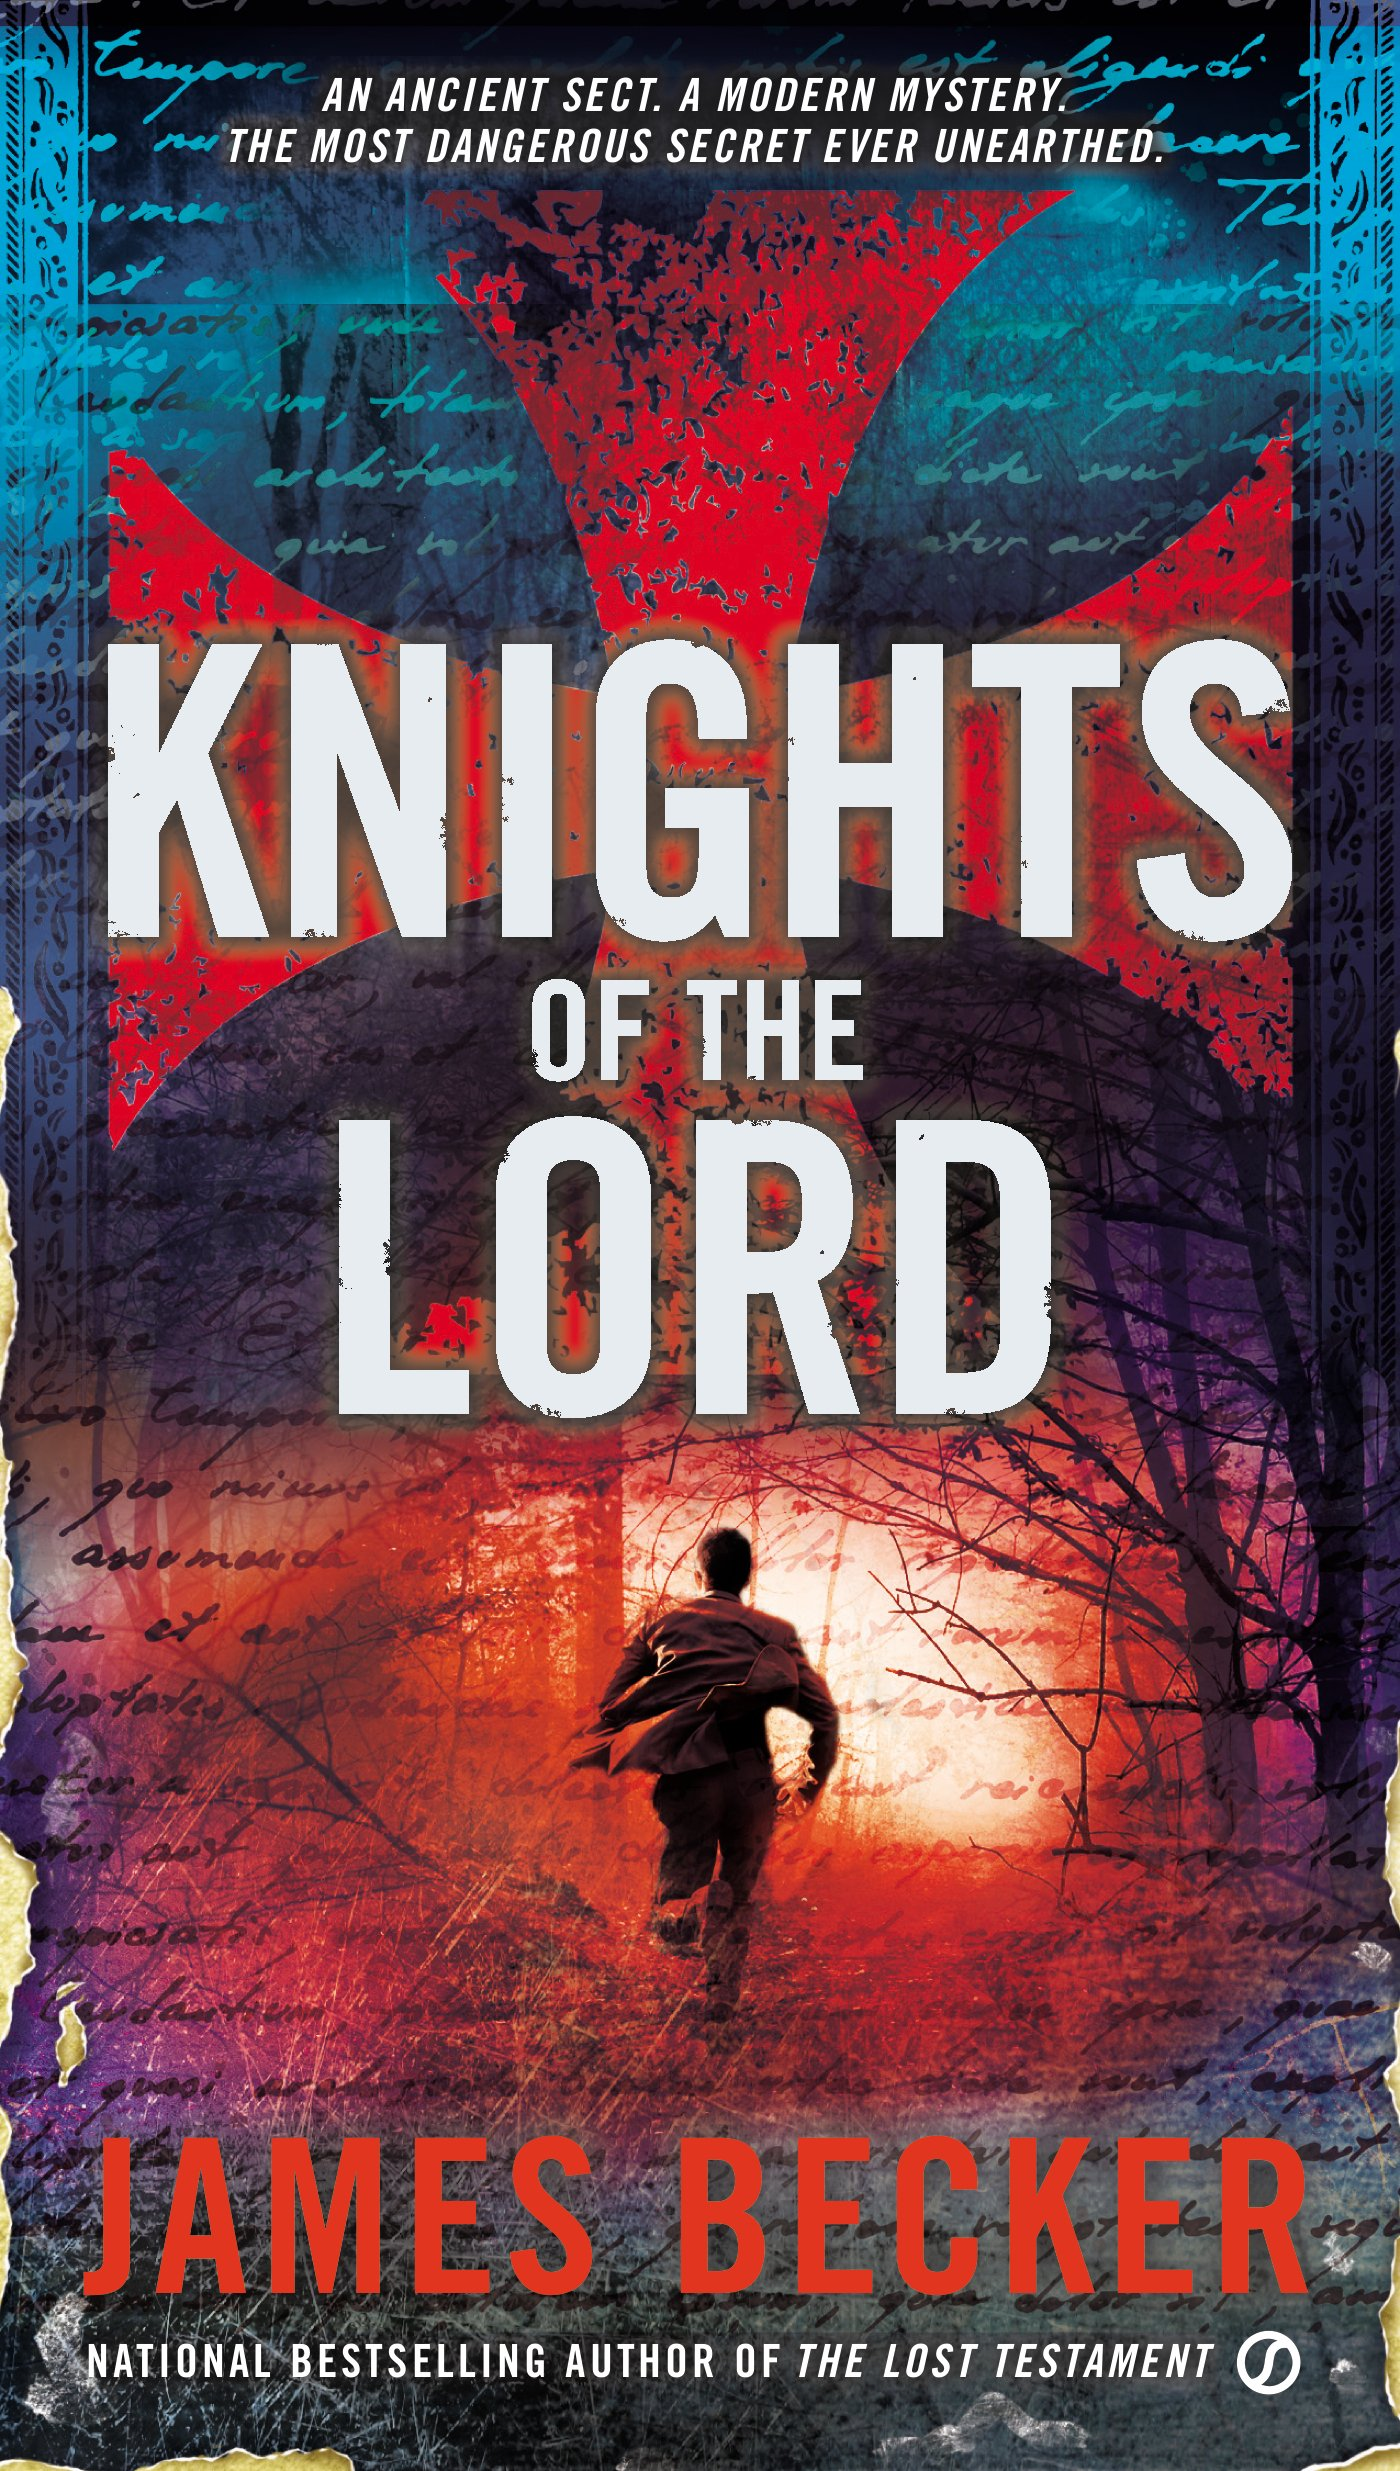 Knights of the Lord